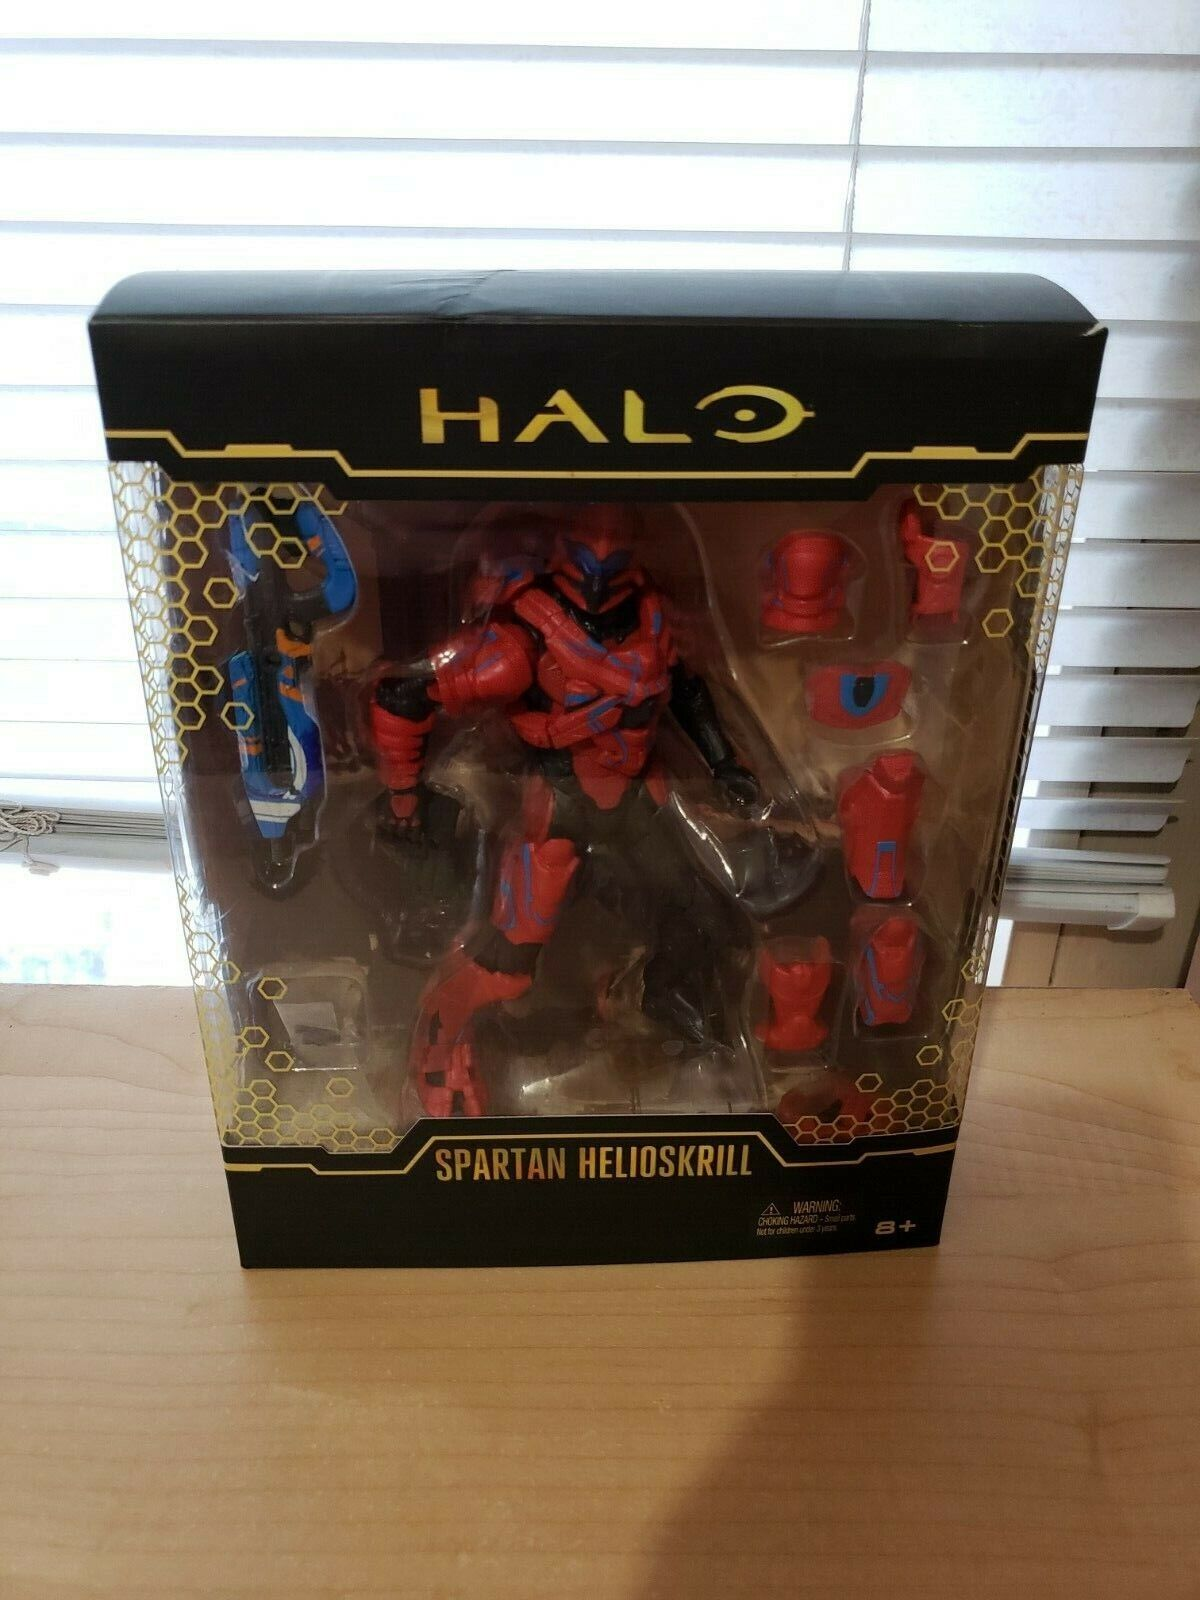 SDCC 2016 EXCLUSIVE MATTEL HALO SPARTAN HELIOSKRILL 6 inch